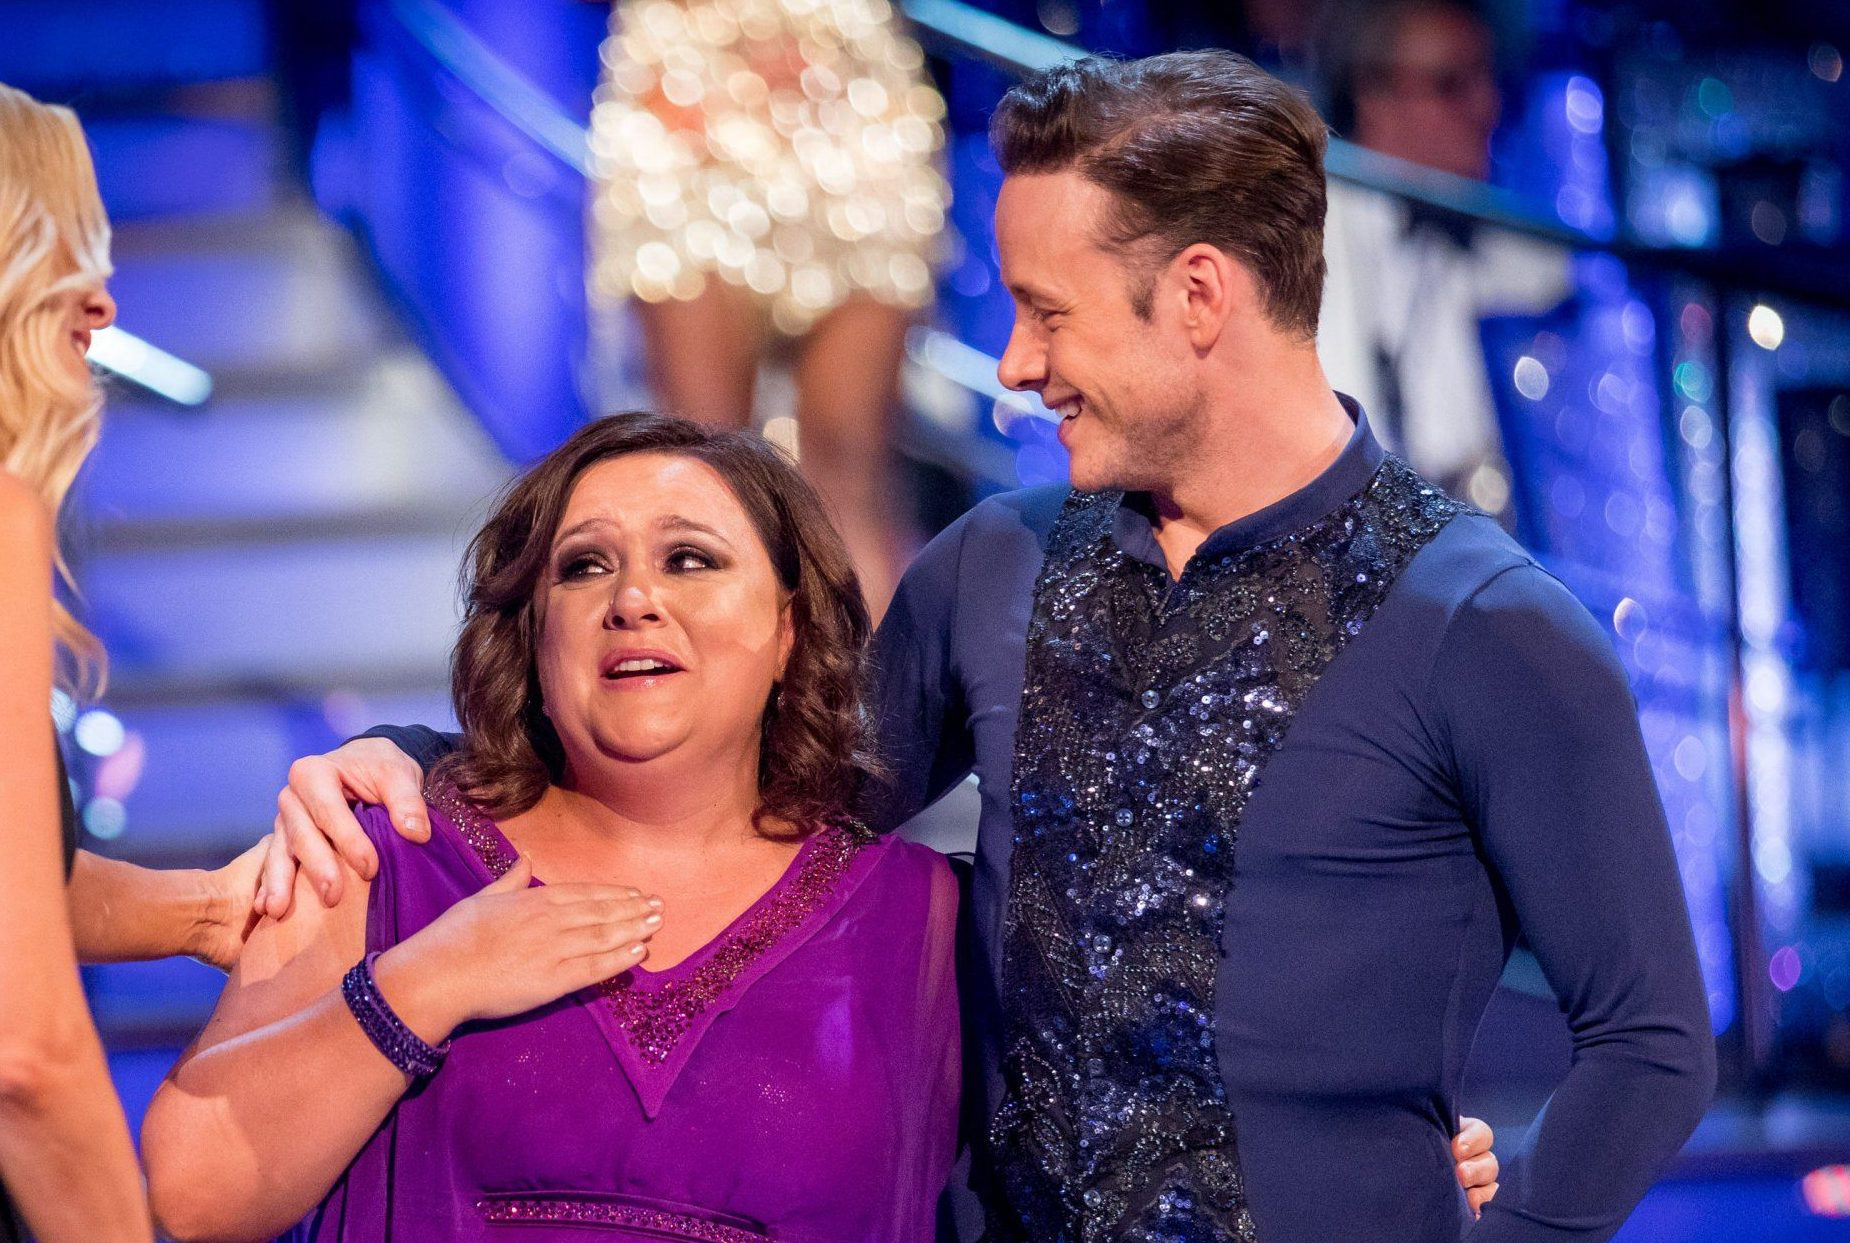 Susan Calman and Kevin Clifton to celebrate Blackpool show with matching 'I love Grimsby' tattoos